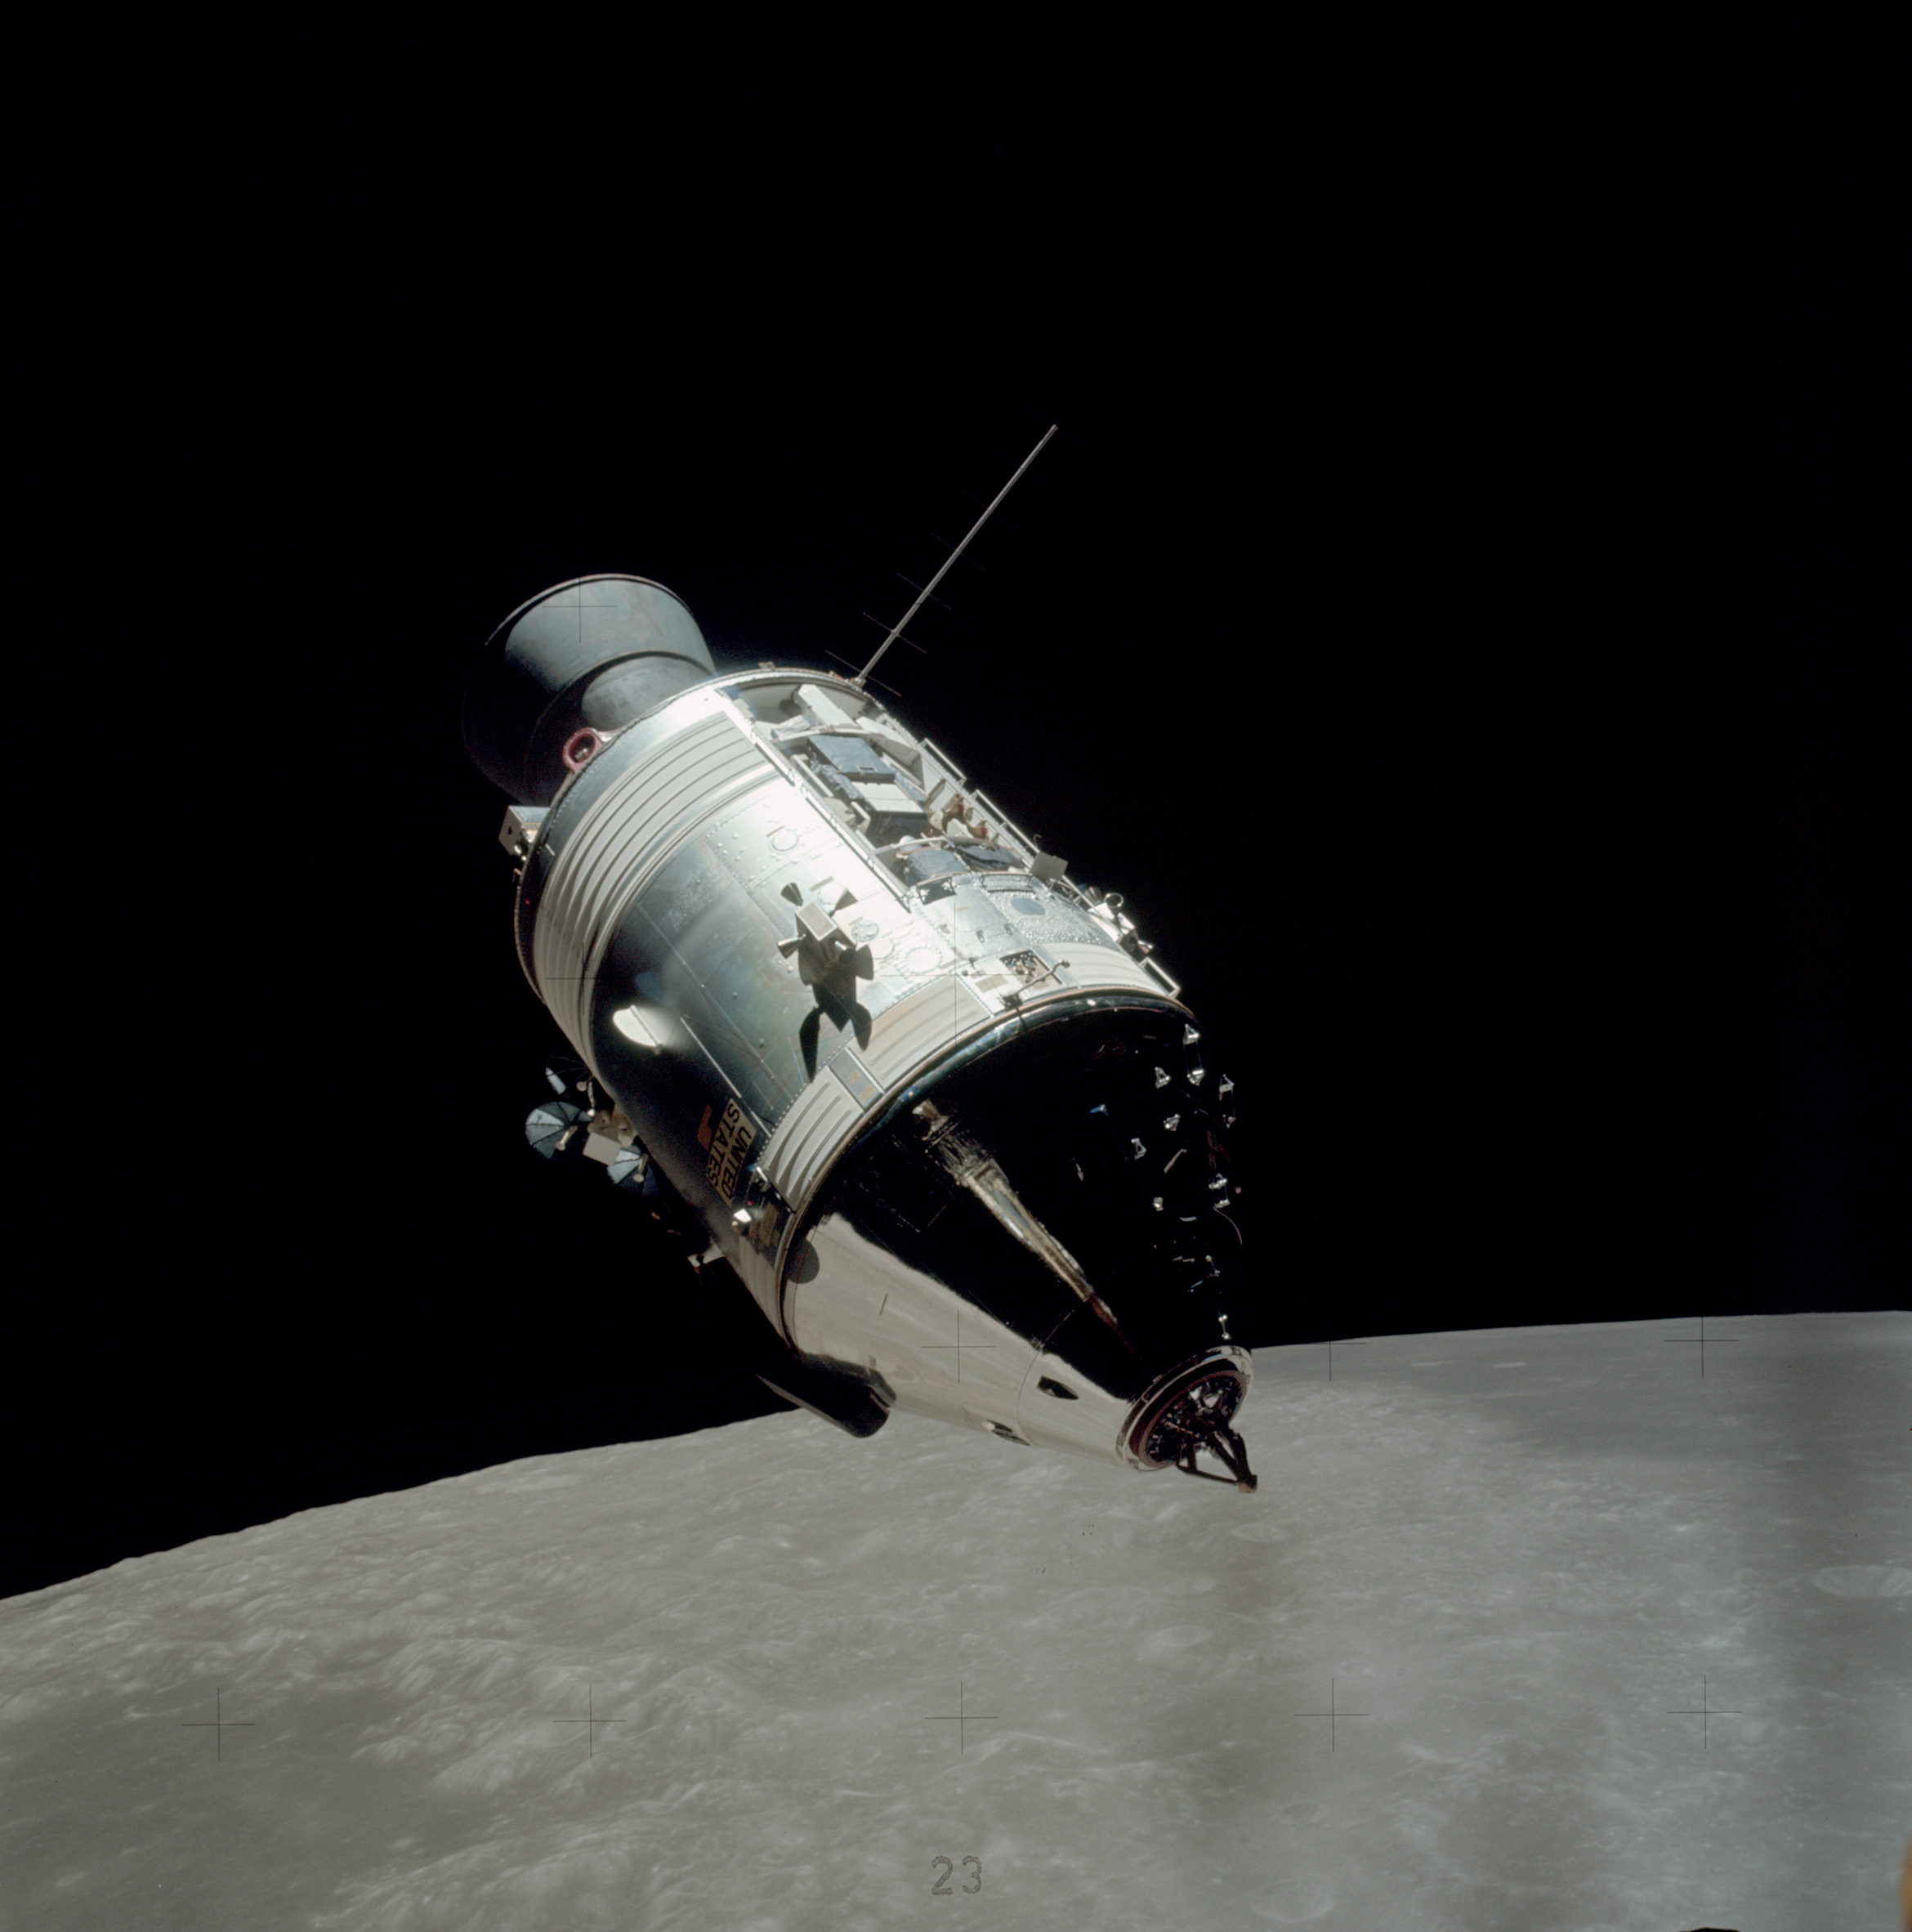 http://upload.wikimedia.org/wikipedia/commons/4/4a/Apollo_17_Command_Module_AS17-145-22261HR.jpg